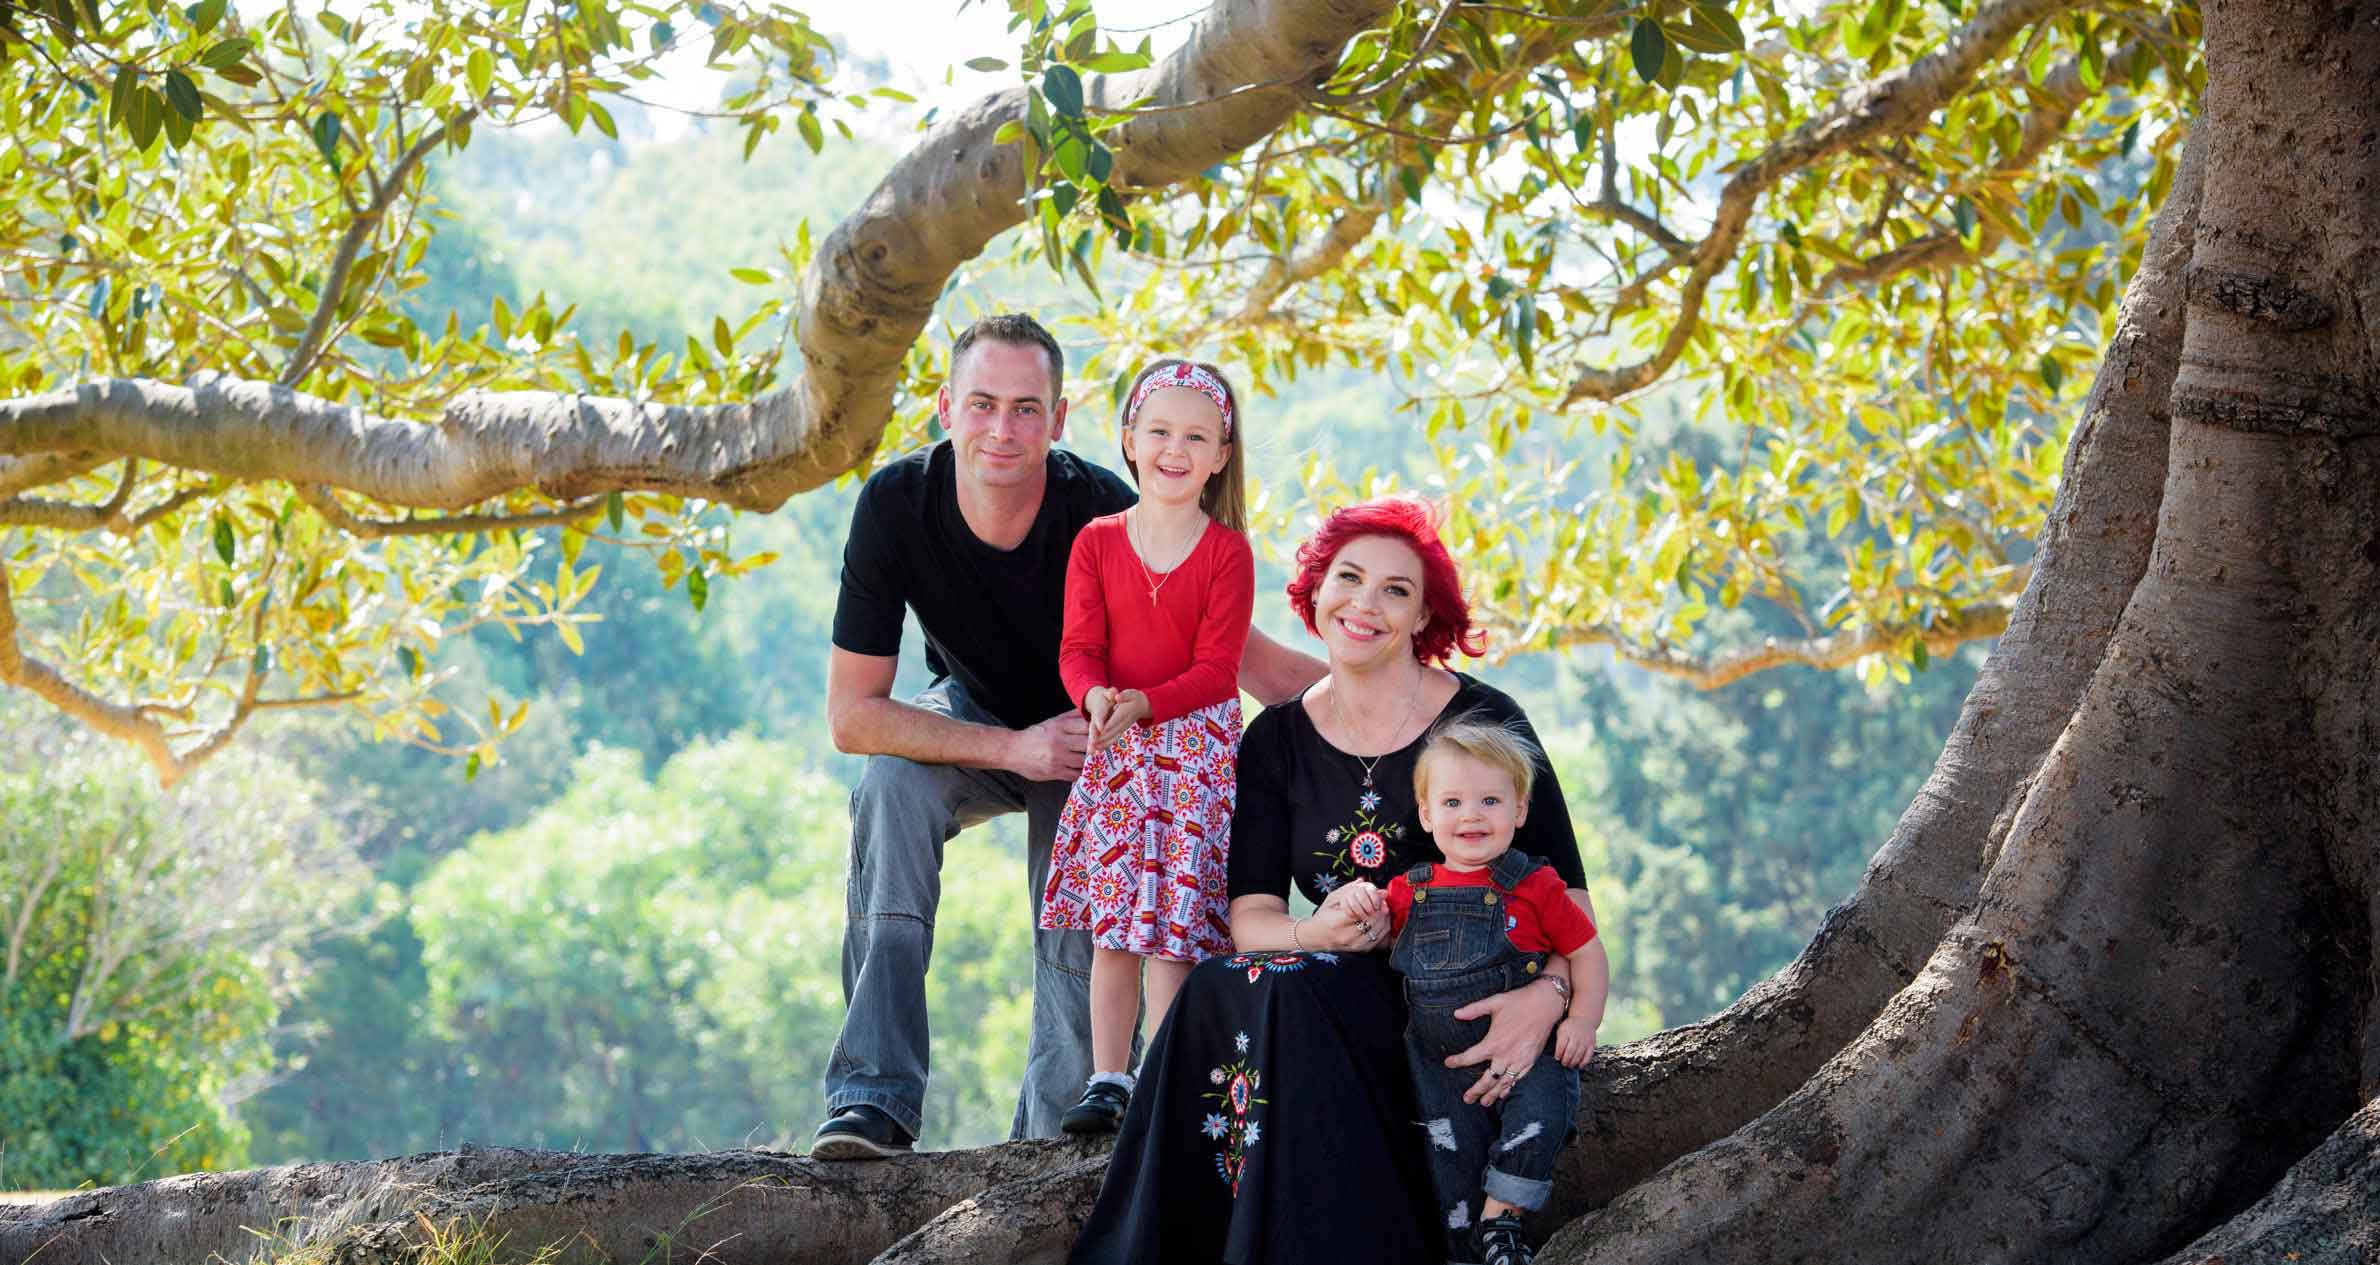 families have fun being photographed outdoors and in the studio with Lifeworks photography in Northcote Melbourne